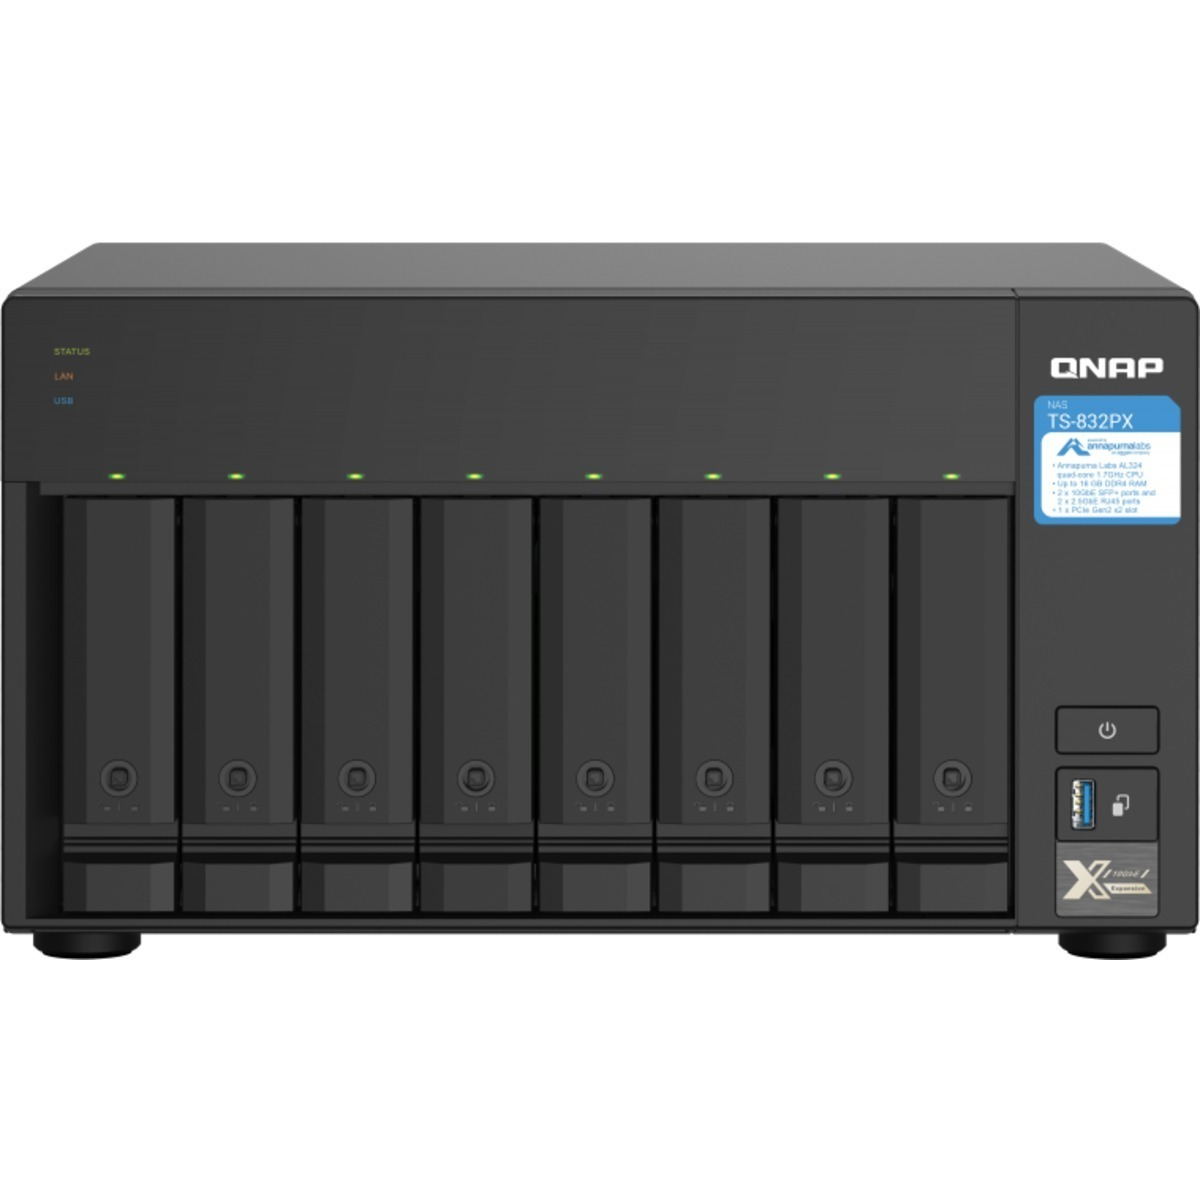 buy $1736 QNAP TS-832PX 32tb Desktop NAS - Network Attached Storage Device 8x4000gb Western Digital Blue WD40EZRZ 3.5 5400rpm SATA 6Gb/s HDD CONSUMER Class Drives Installed - Burn-In Tested - ON SALE - FREE RAM UPGRADE - nas headquarters buy network attached storage server device das new raid-5 free shipping usa holiday new year clearance sale TS-832PX